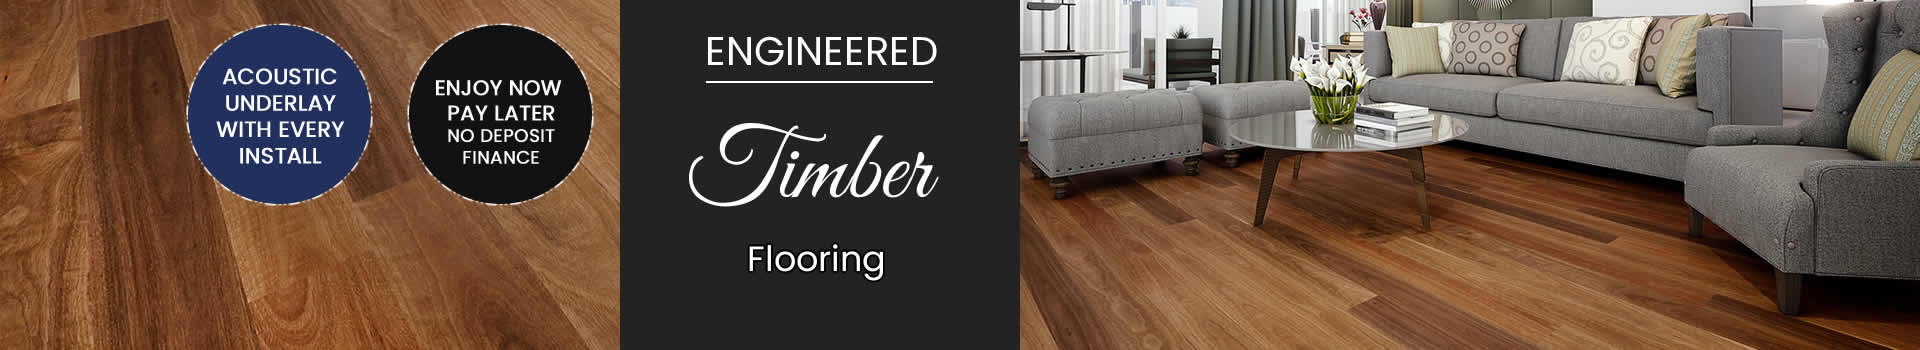 Melbourne engineered timber floors